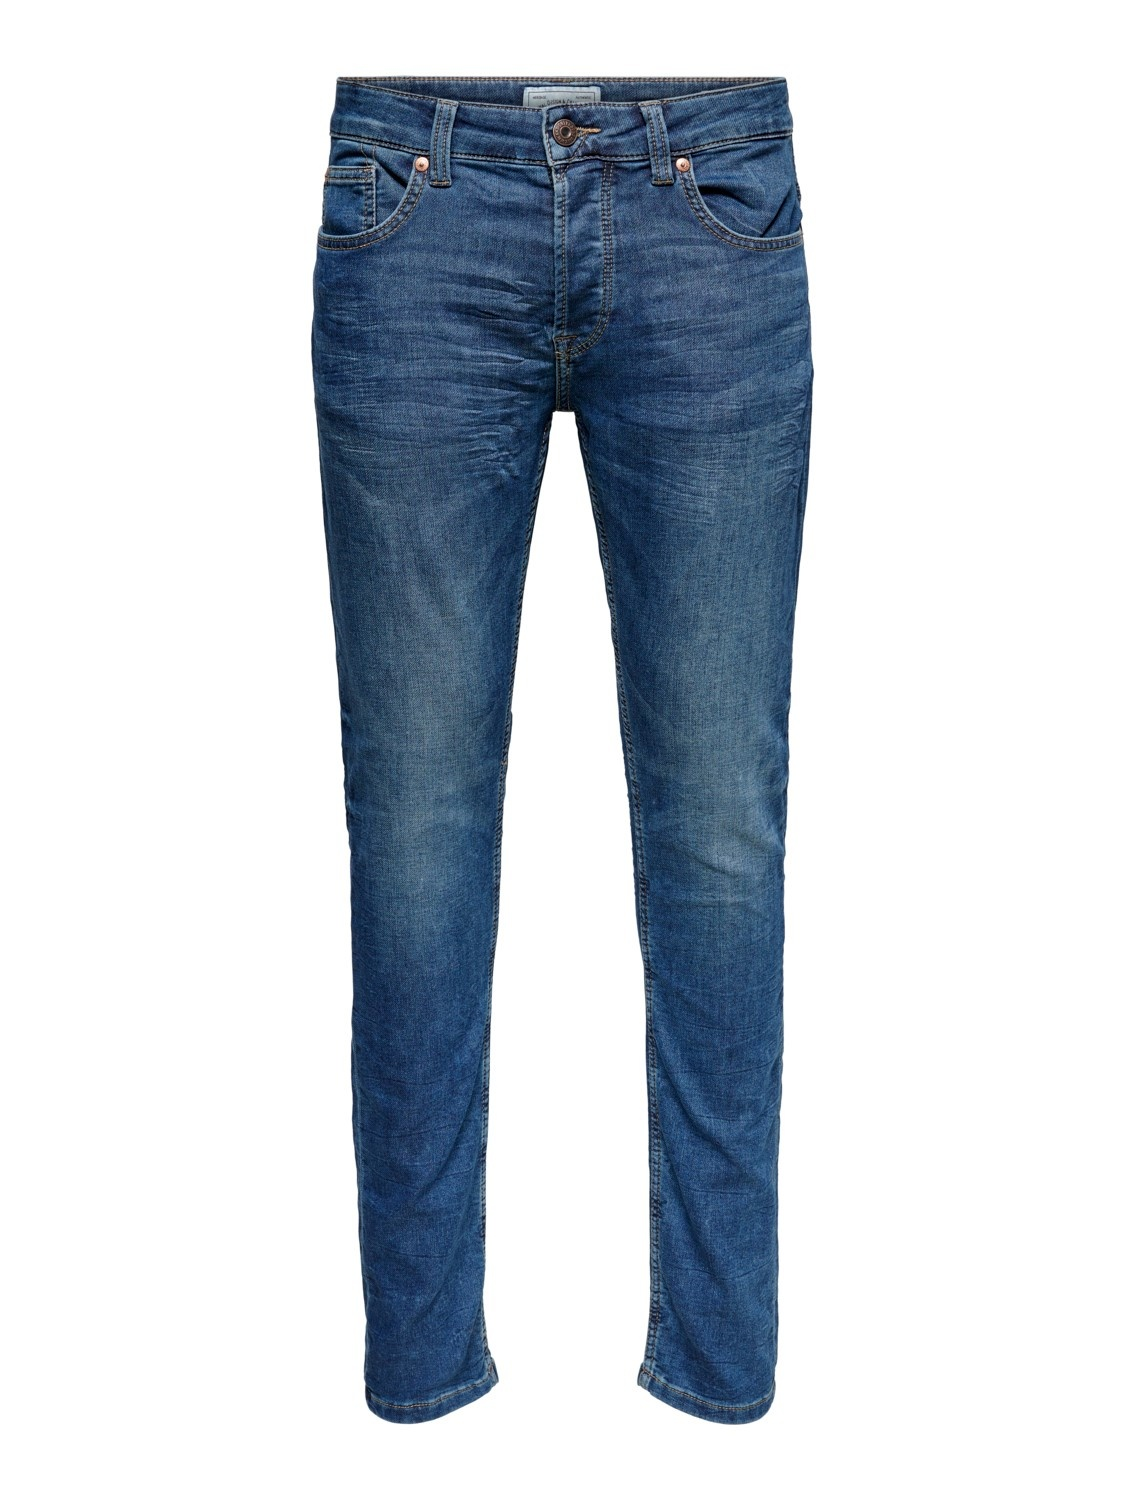 Only & Sons Only & Sons Jeans Loom